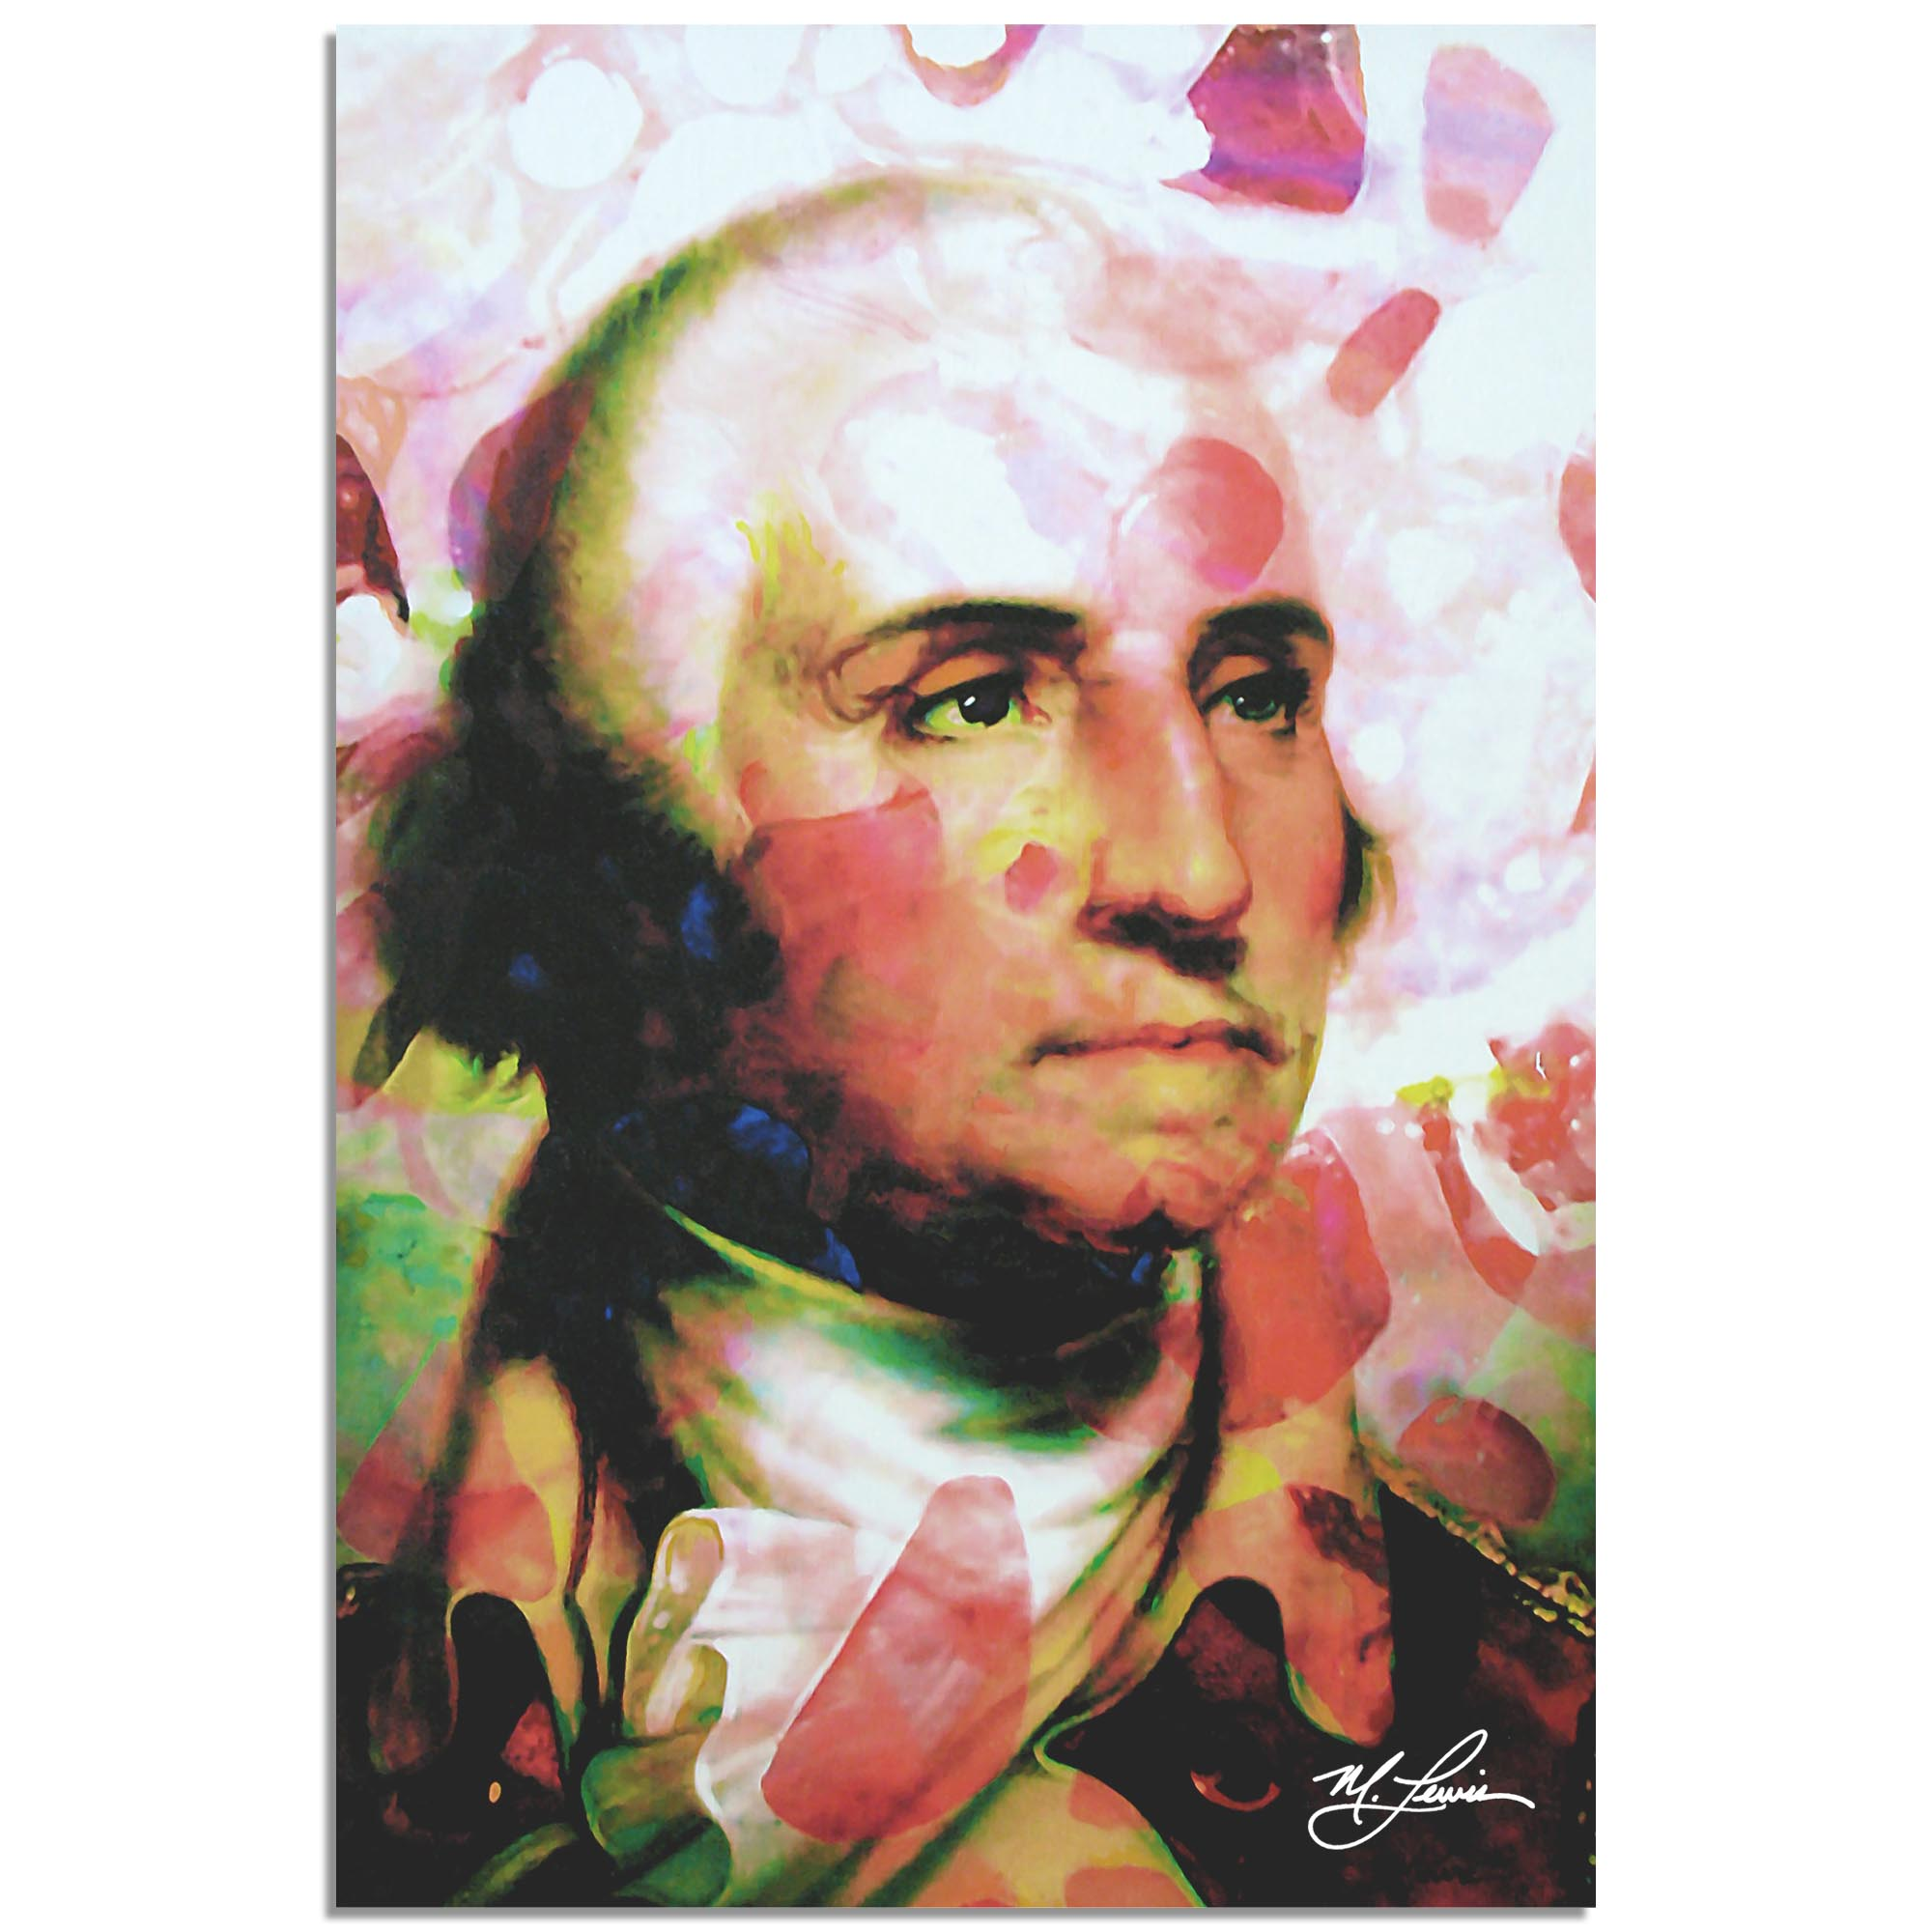 George Washington Disciplined Soul by Mark Lewis - Celebrity Pop Art on Metal or Plexiglass